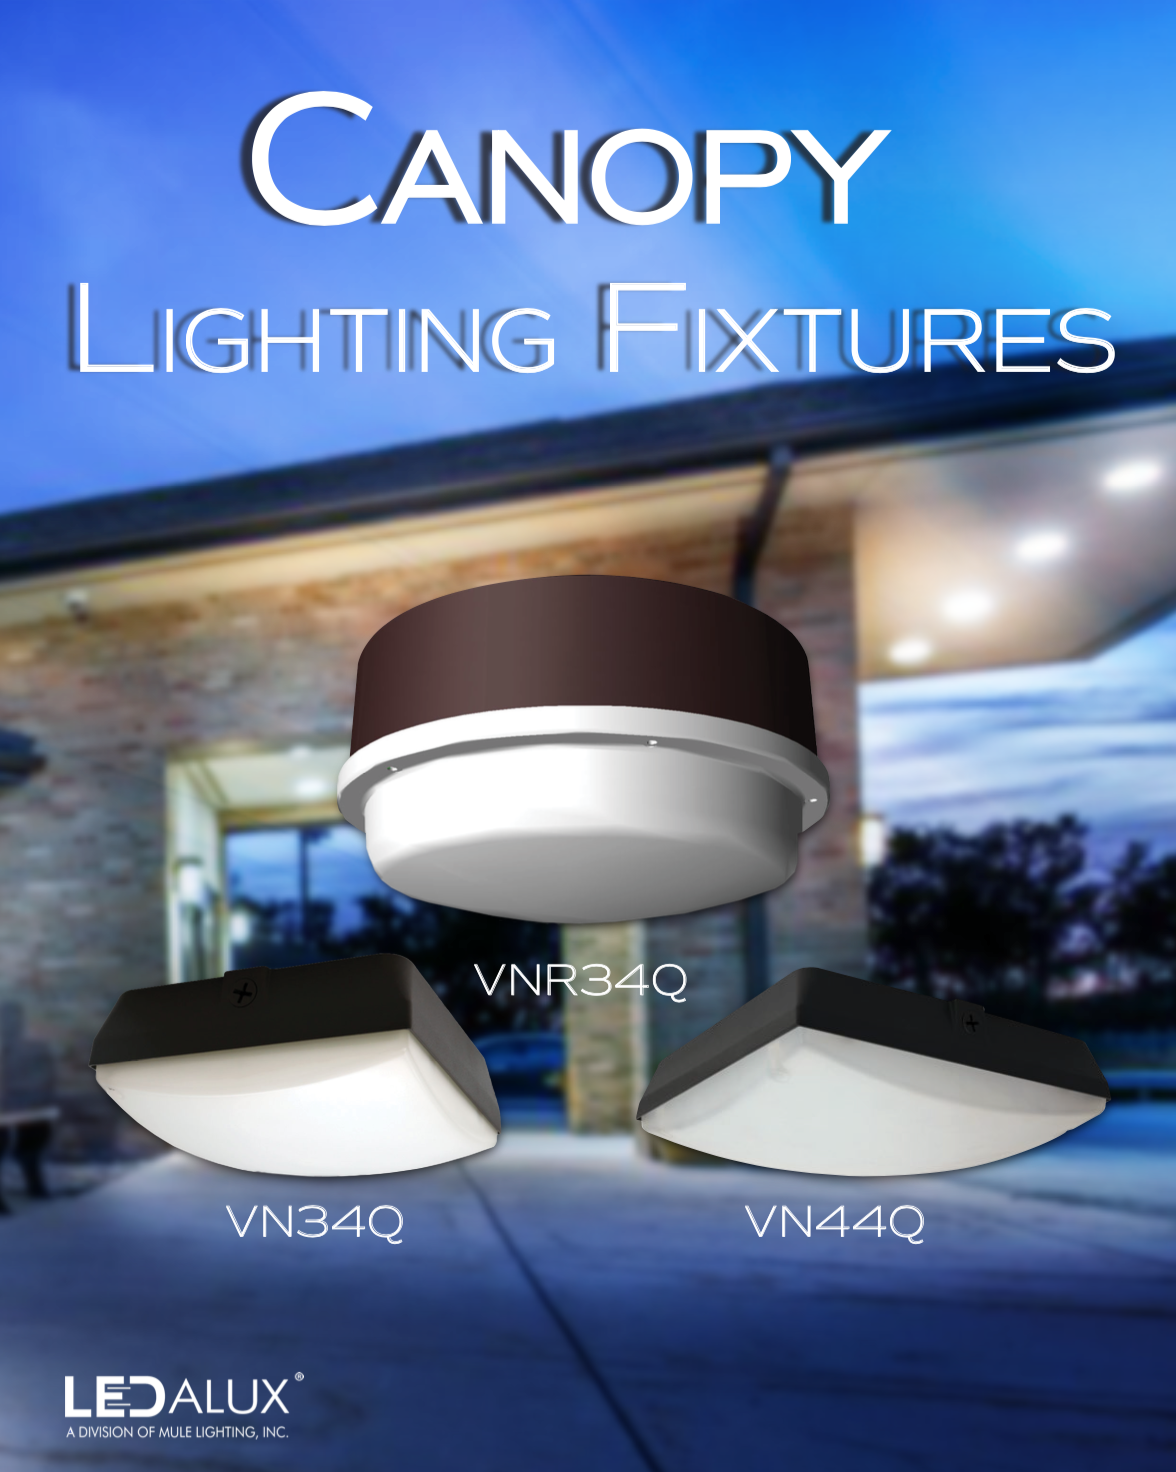 LEDalux Canopy Lighting Fixtures Literature